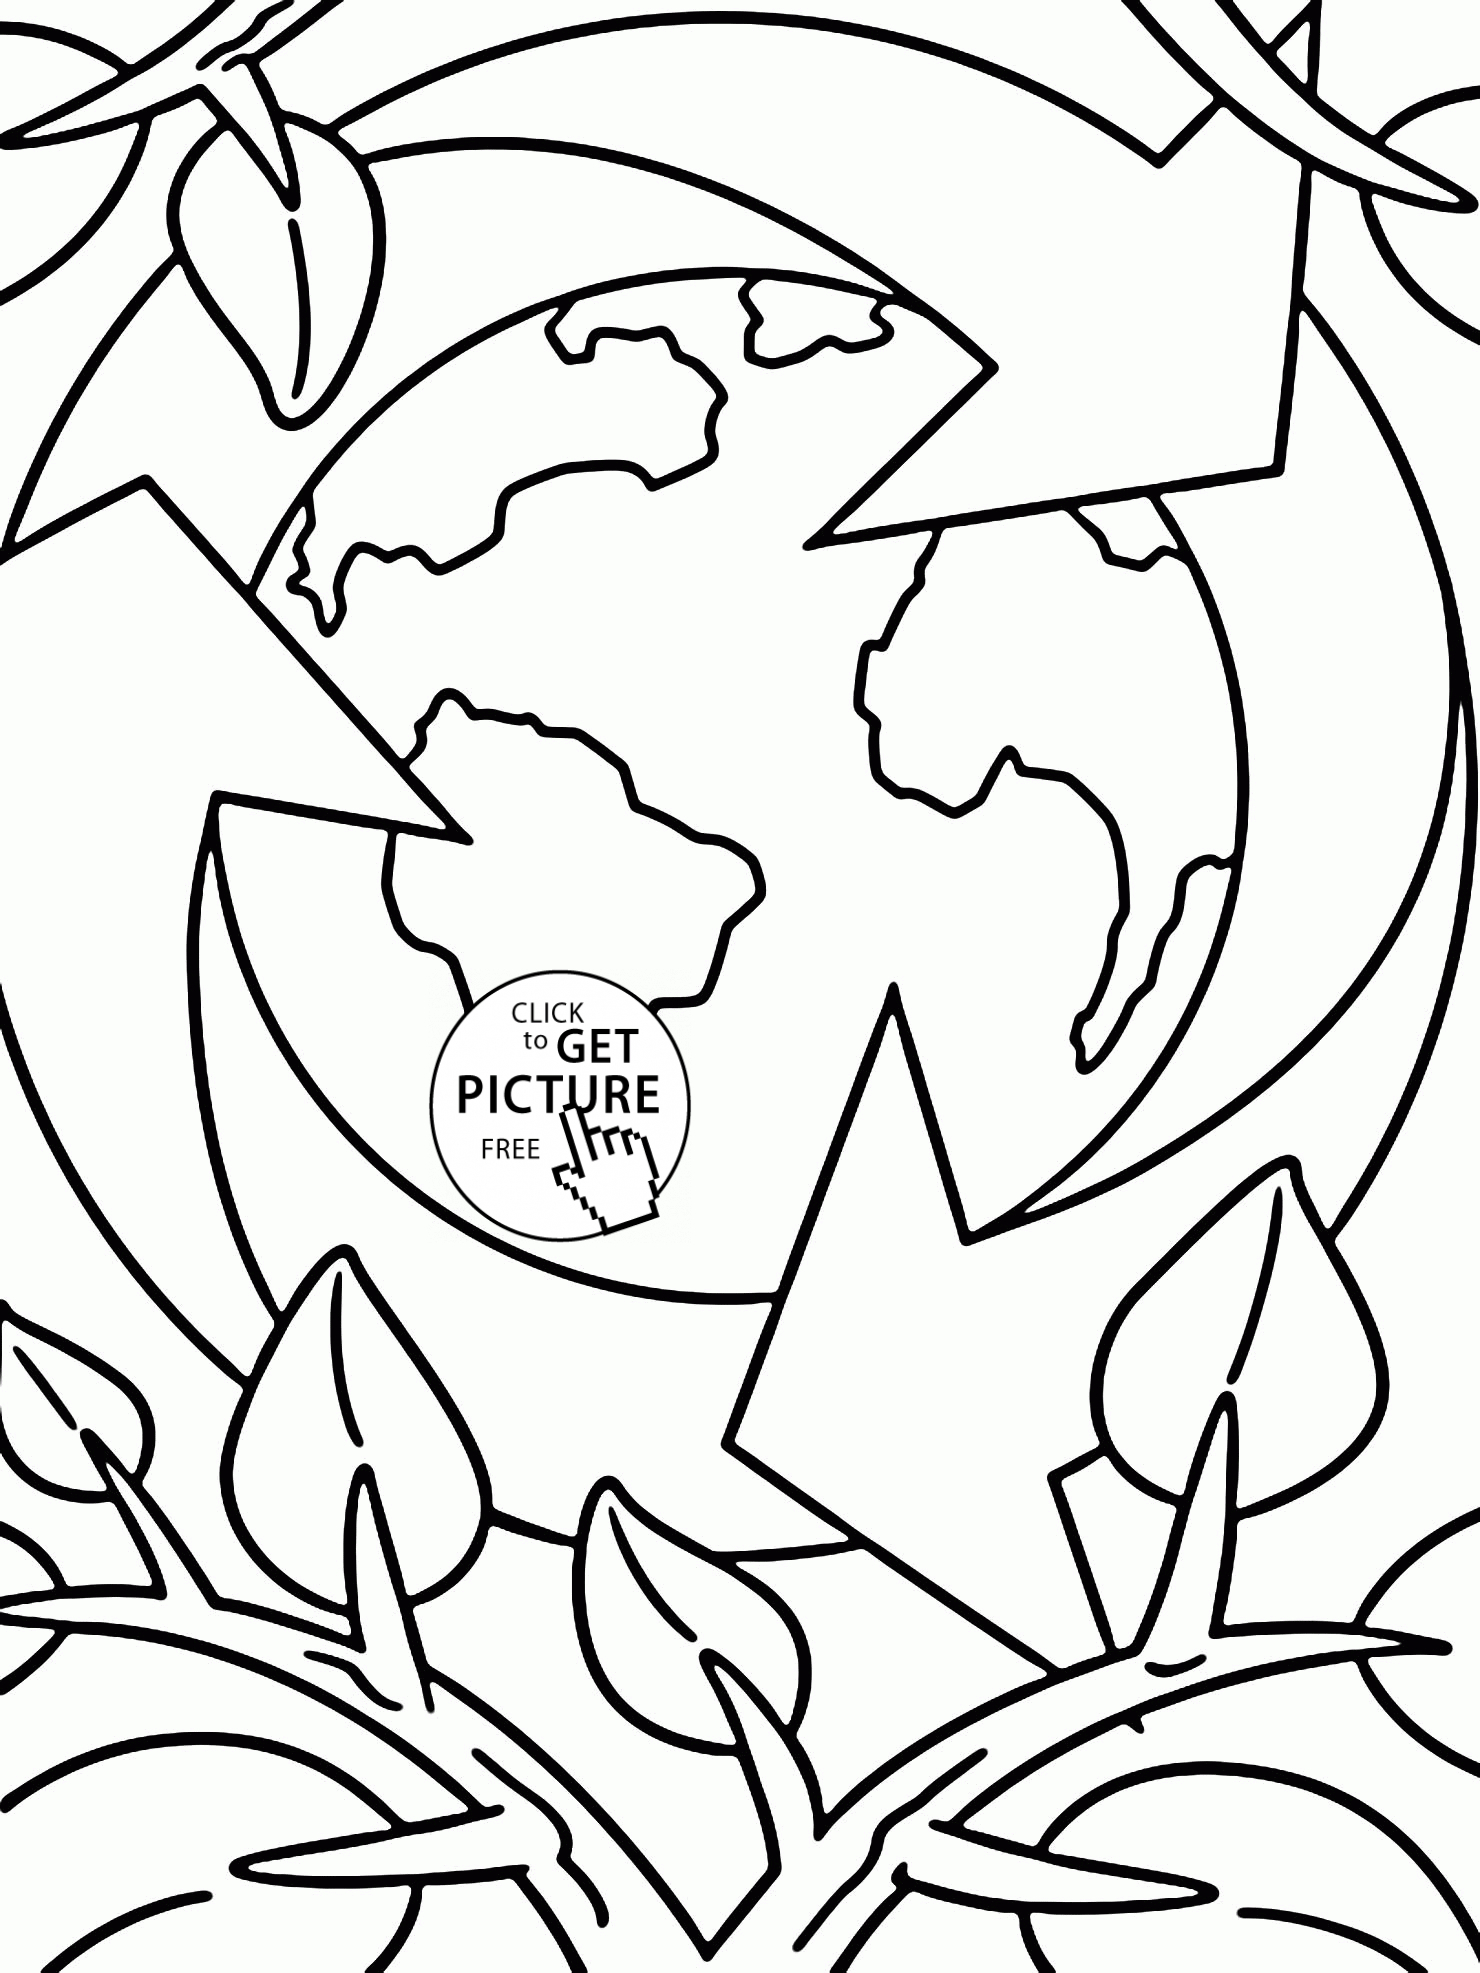 Earth Coloring Pages Coloring Page Earth Day Coloring ...